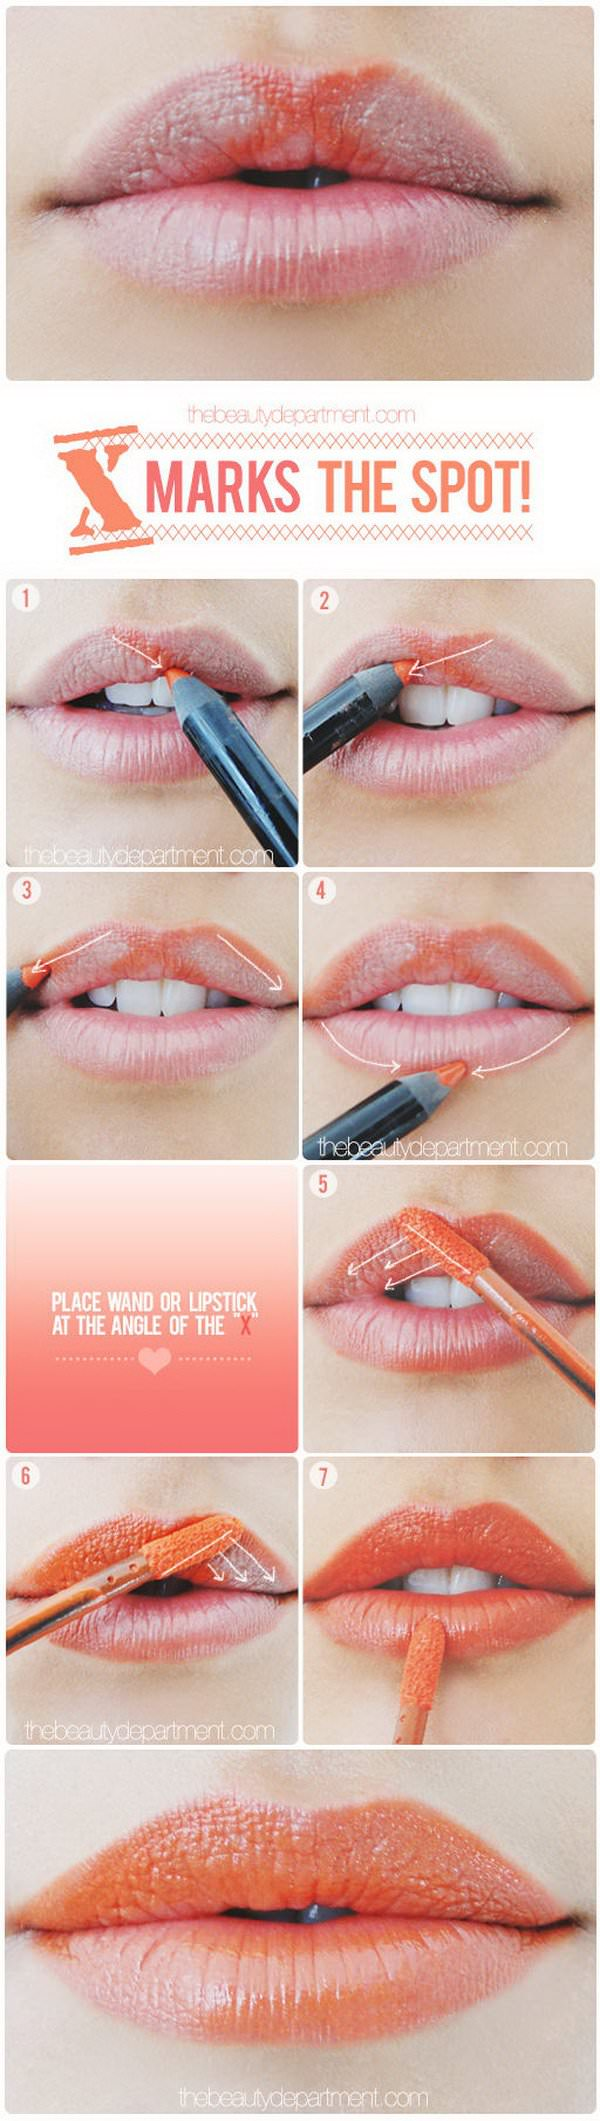 x lipstick hack for the perfect cupids bow